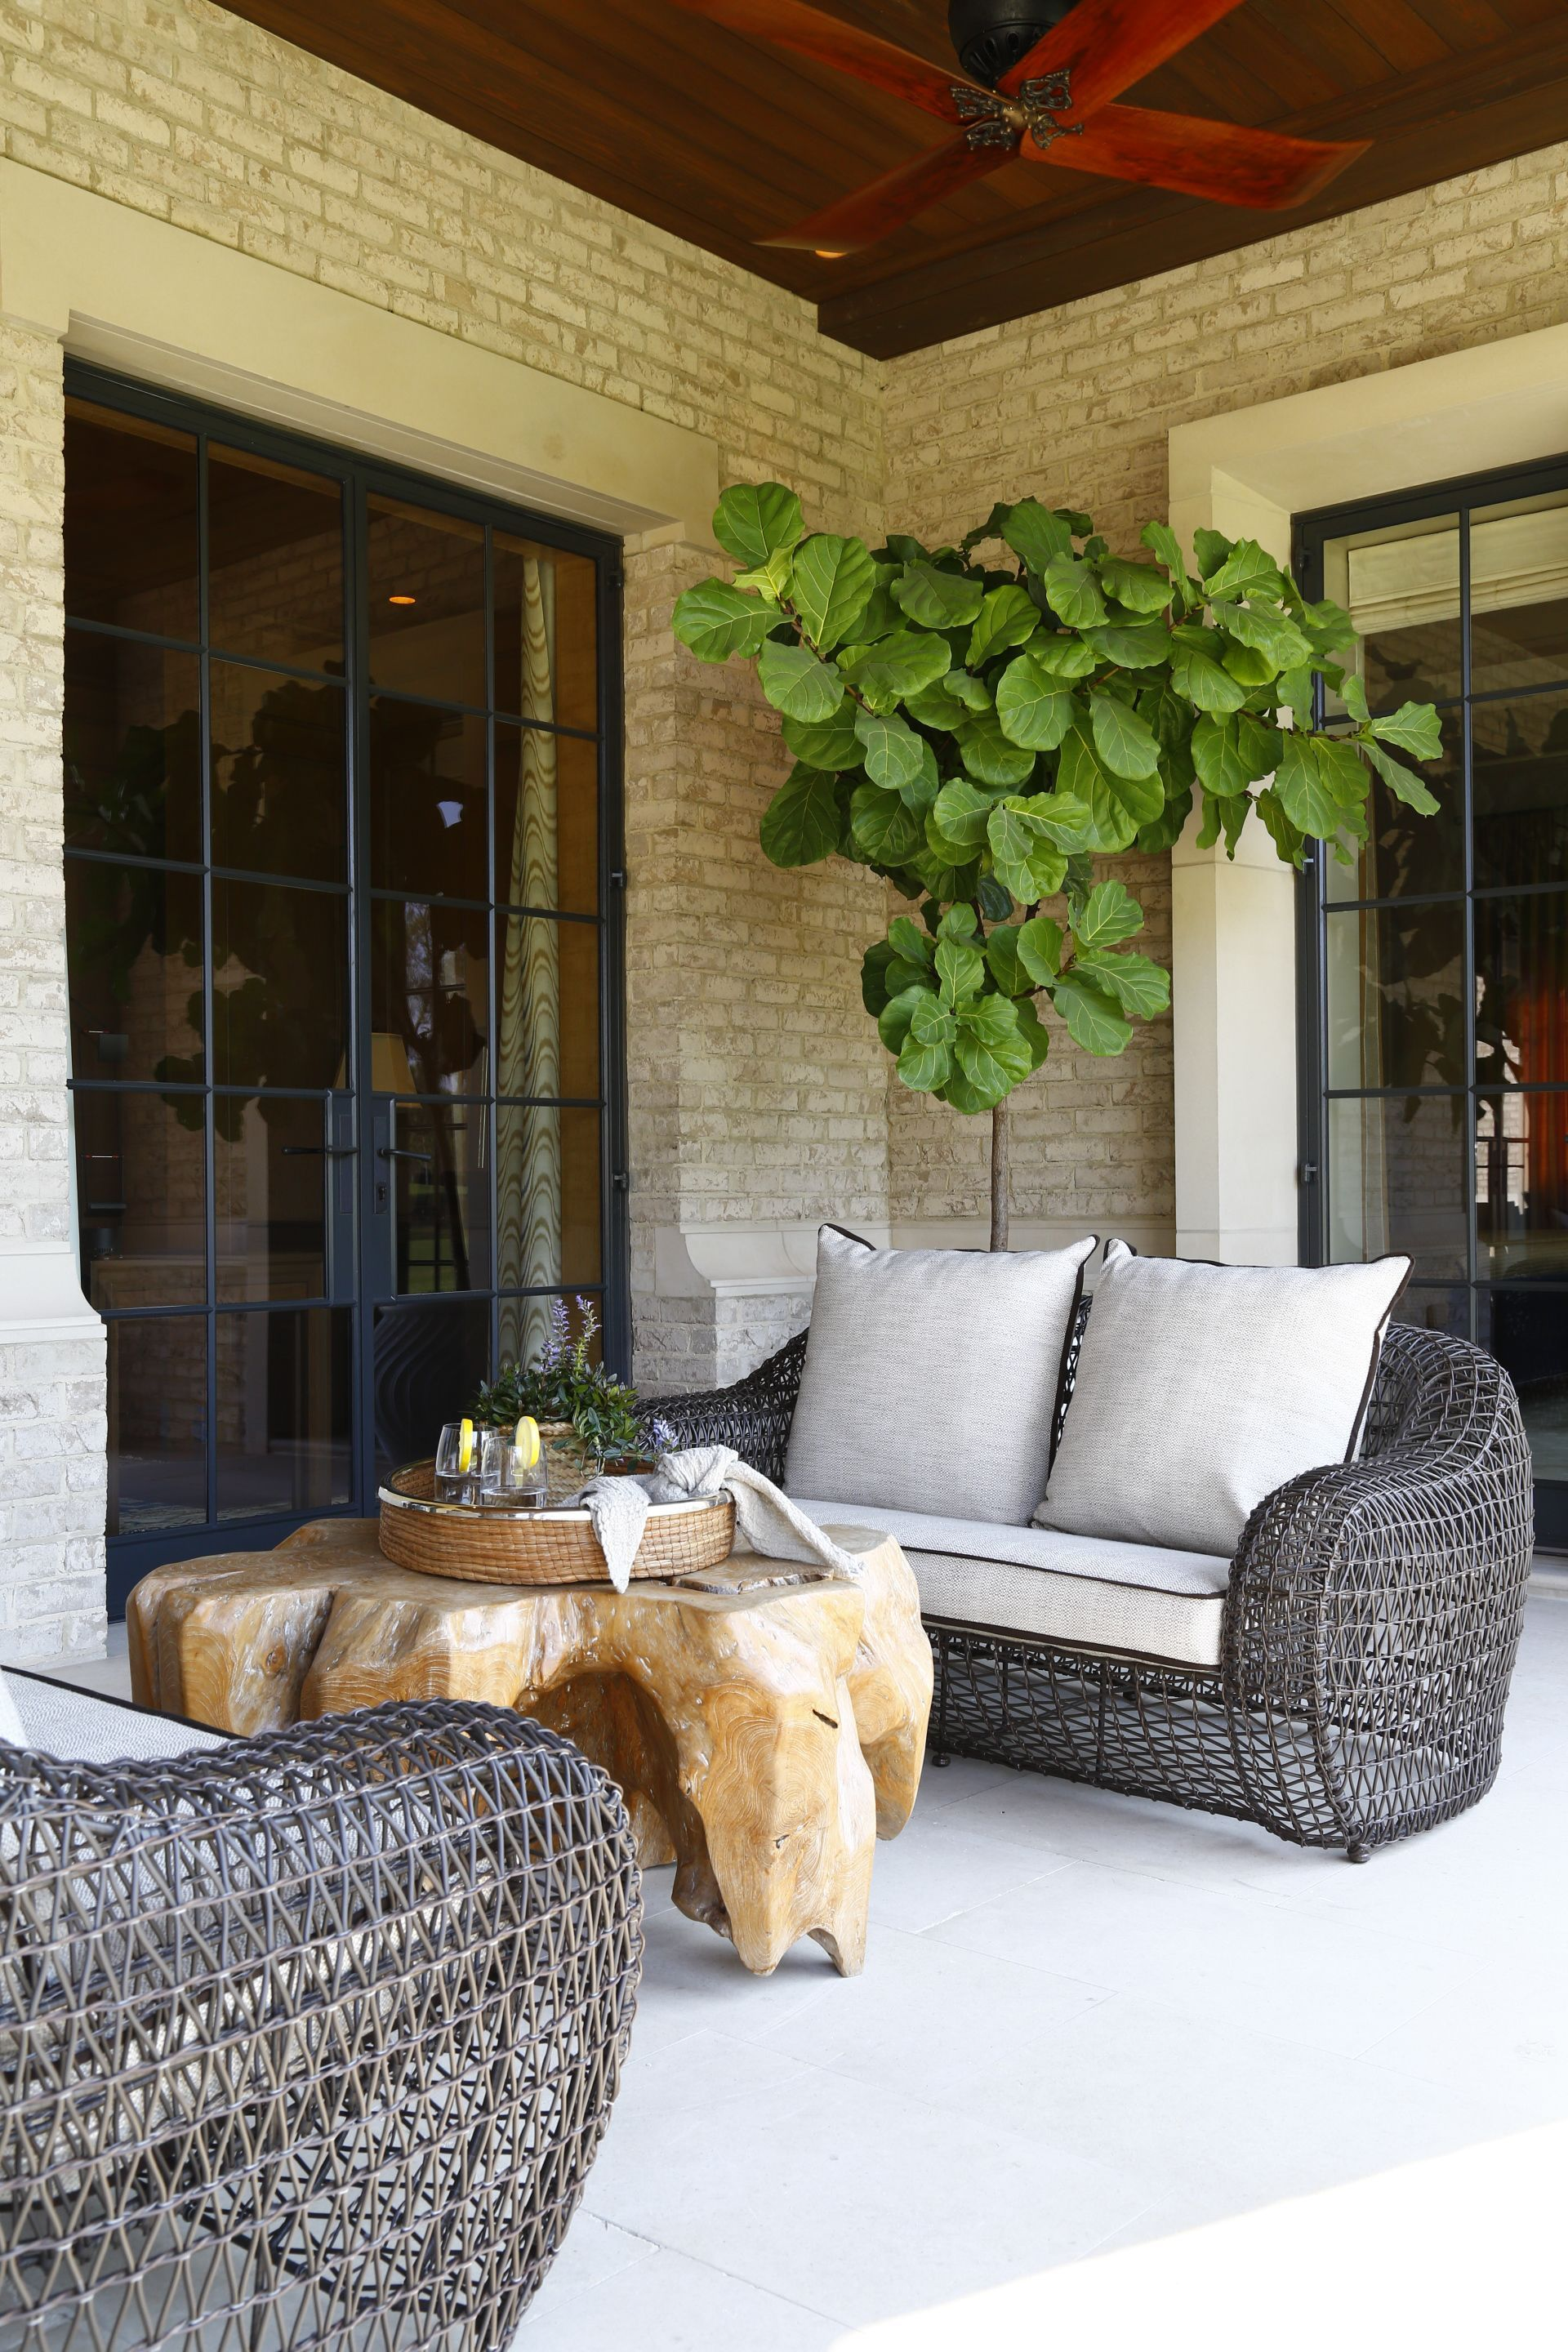 30A6220 - Contemporary - Exterior/Patio - Images by Chancey Design ...